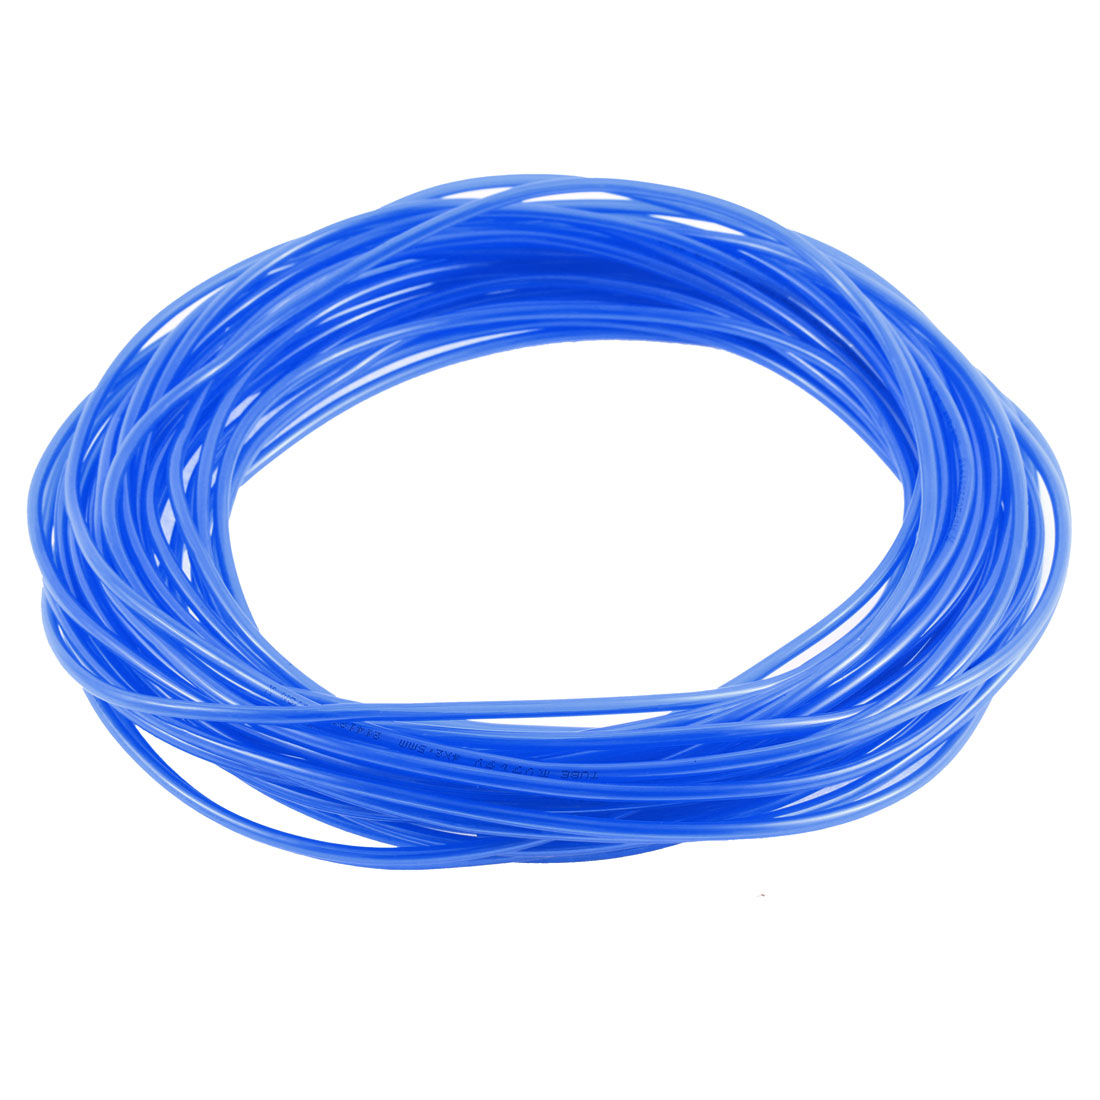 Polyurethane PU Air Tube Tubing Pipe Hose Blue 19M Length 4mm x 2.5mm Dia